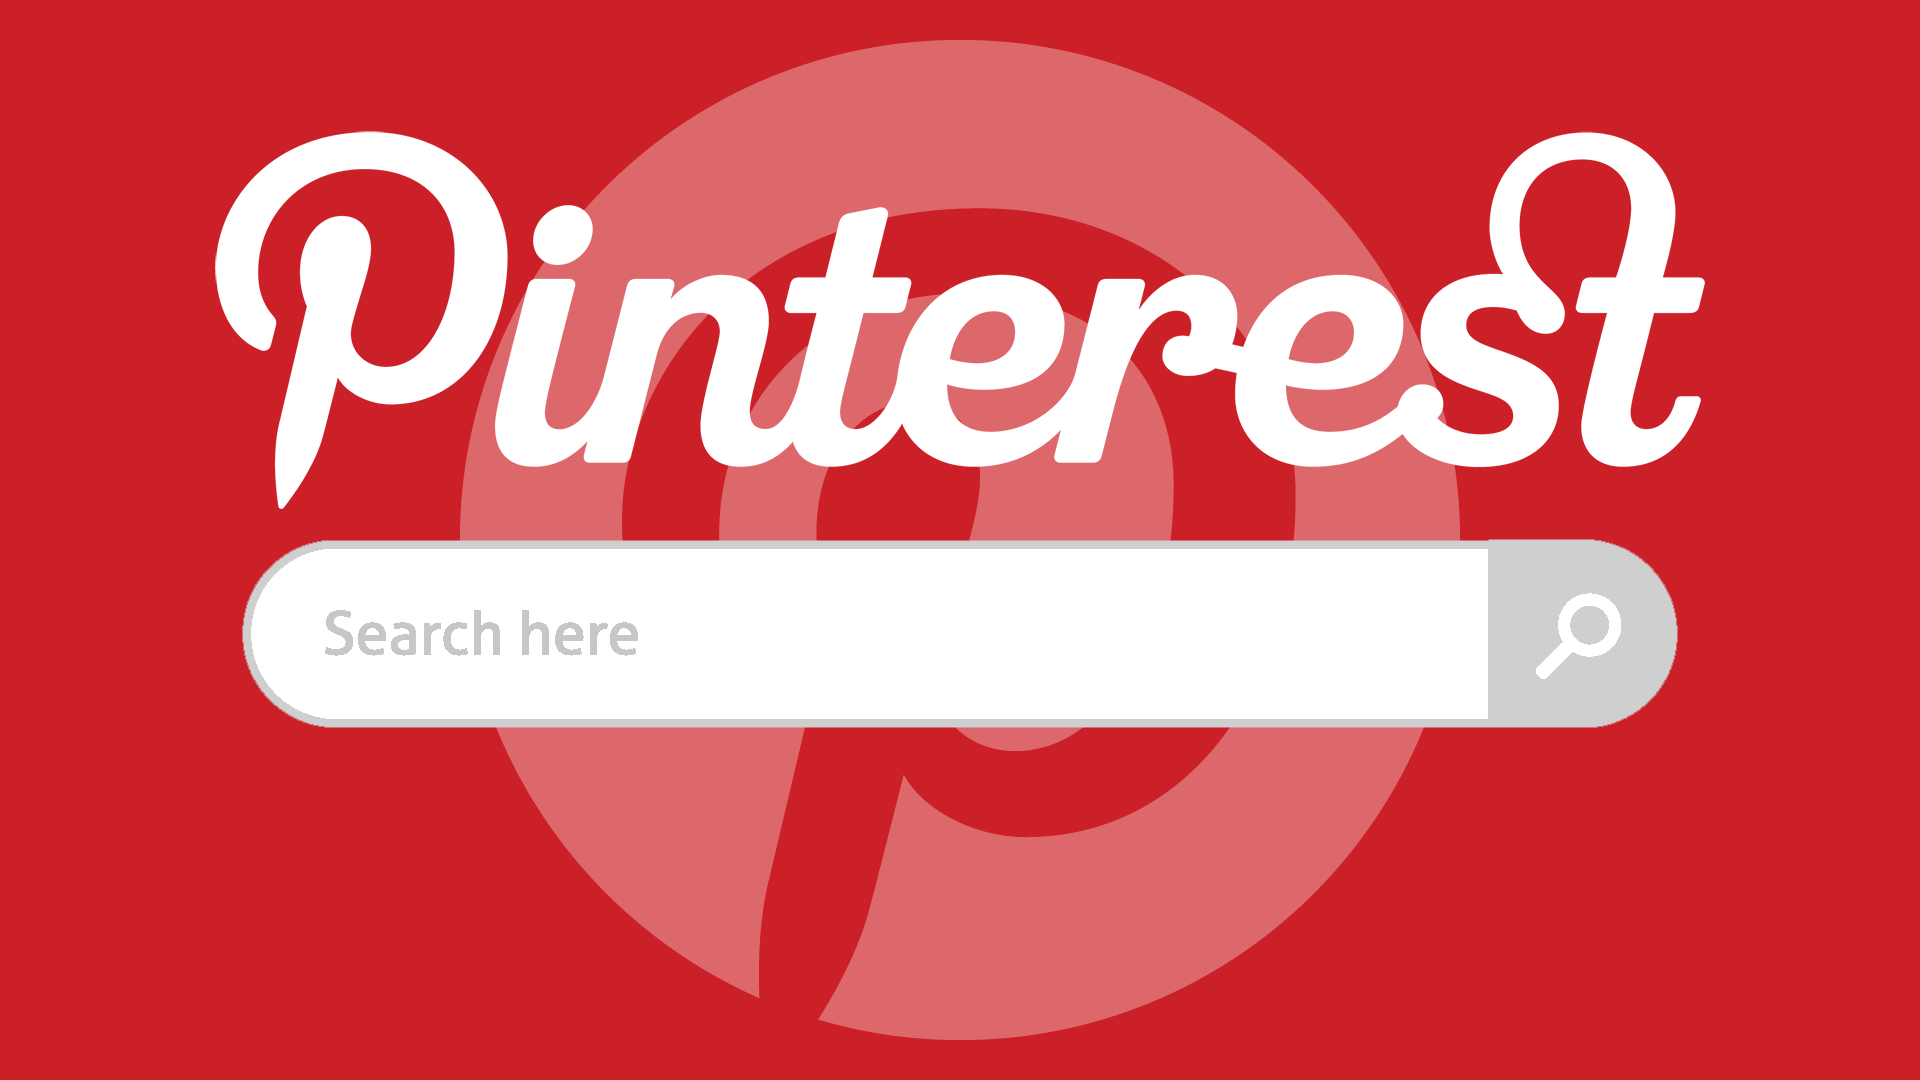 The Beginners Guide to Setup Pinterest Account - Social Singam